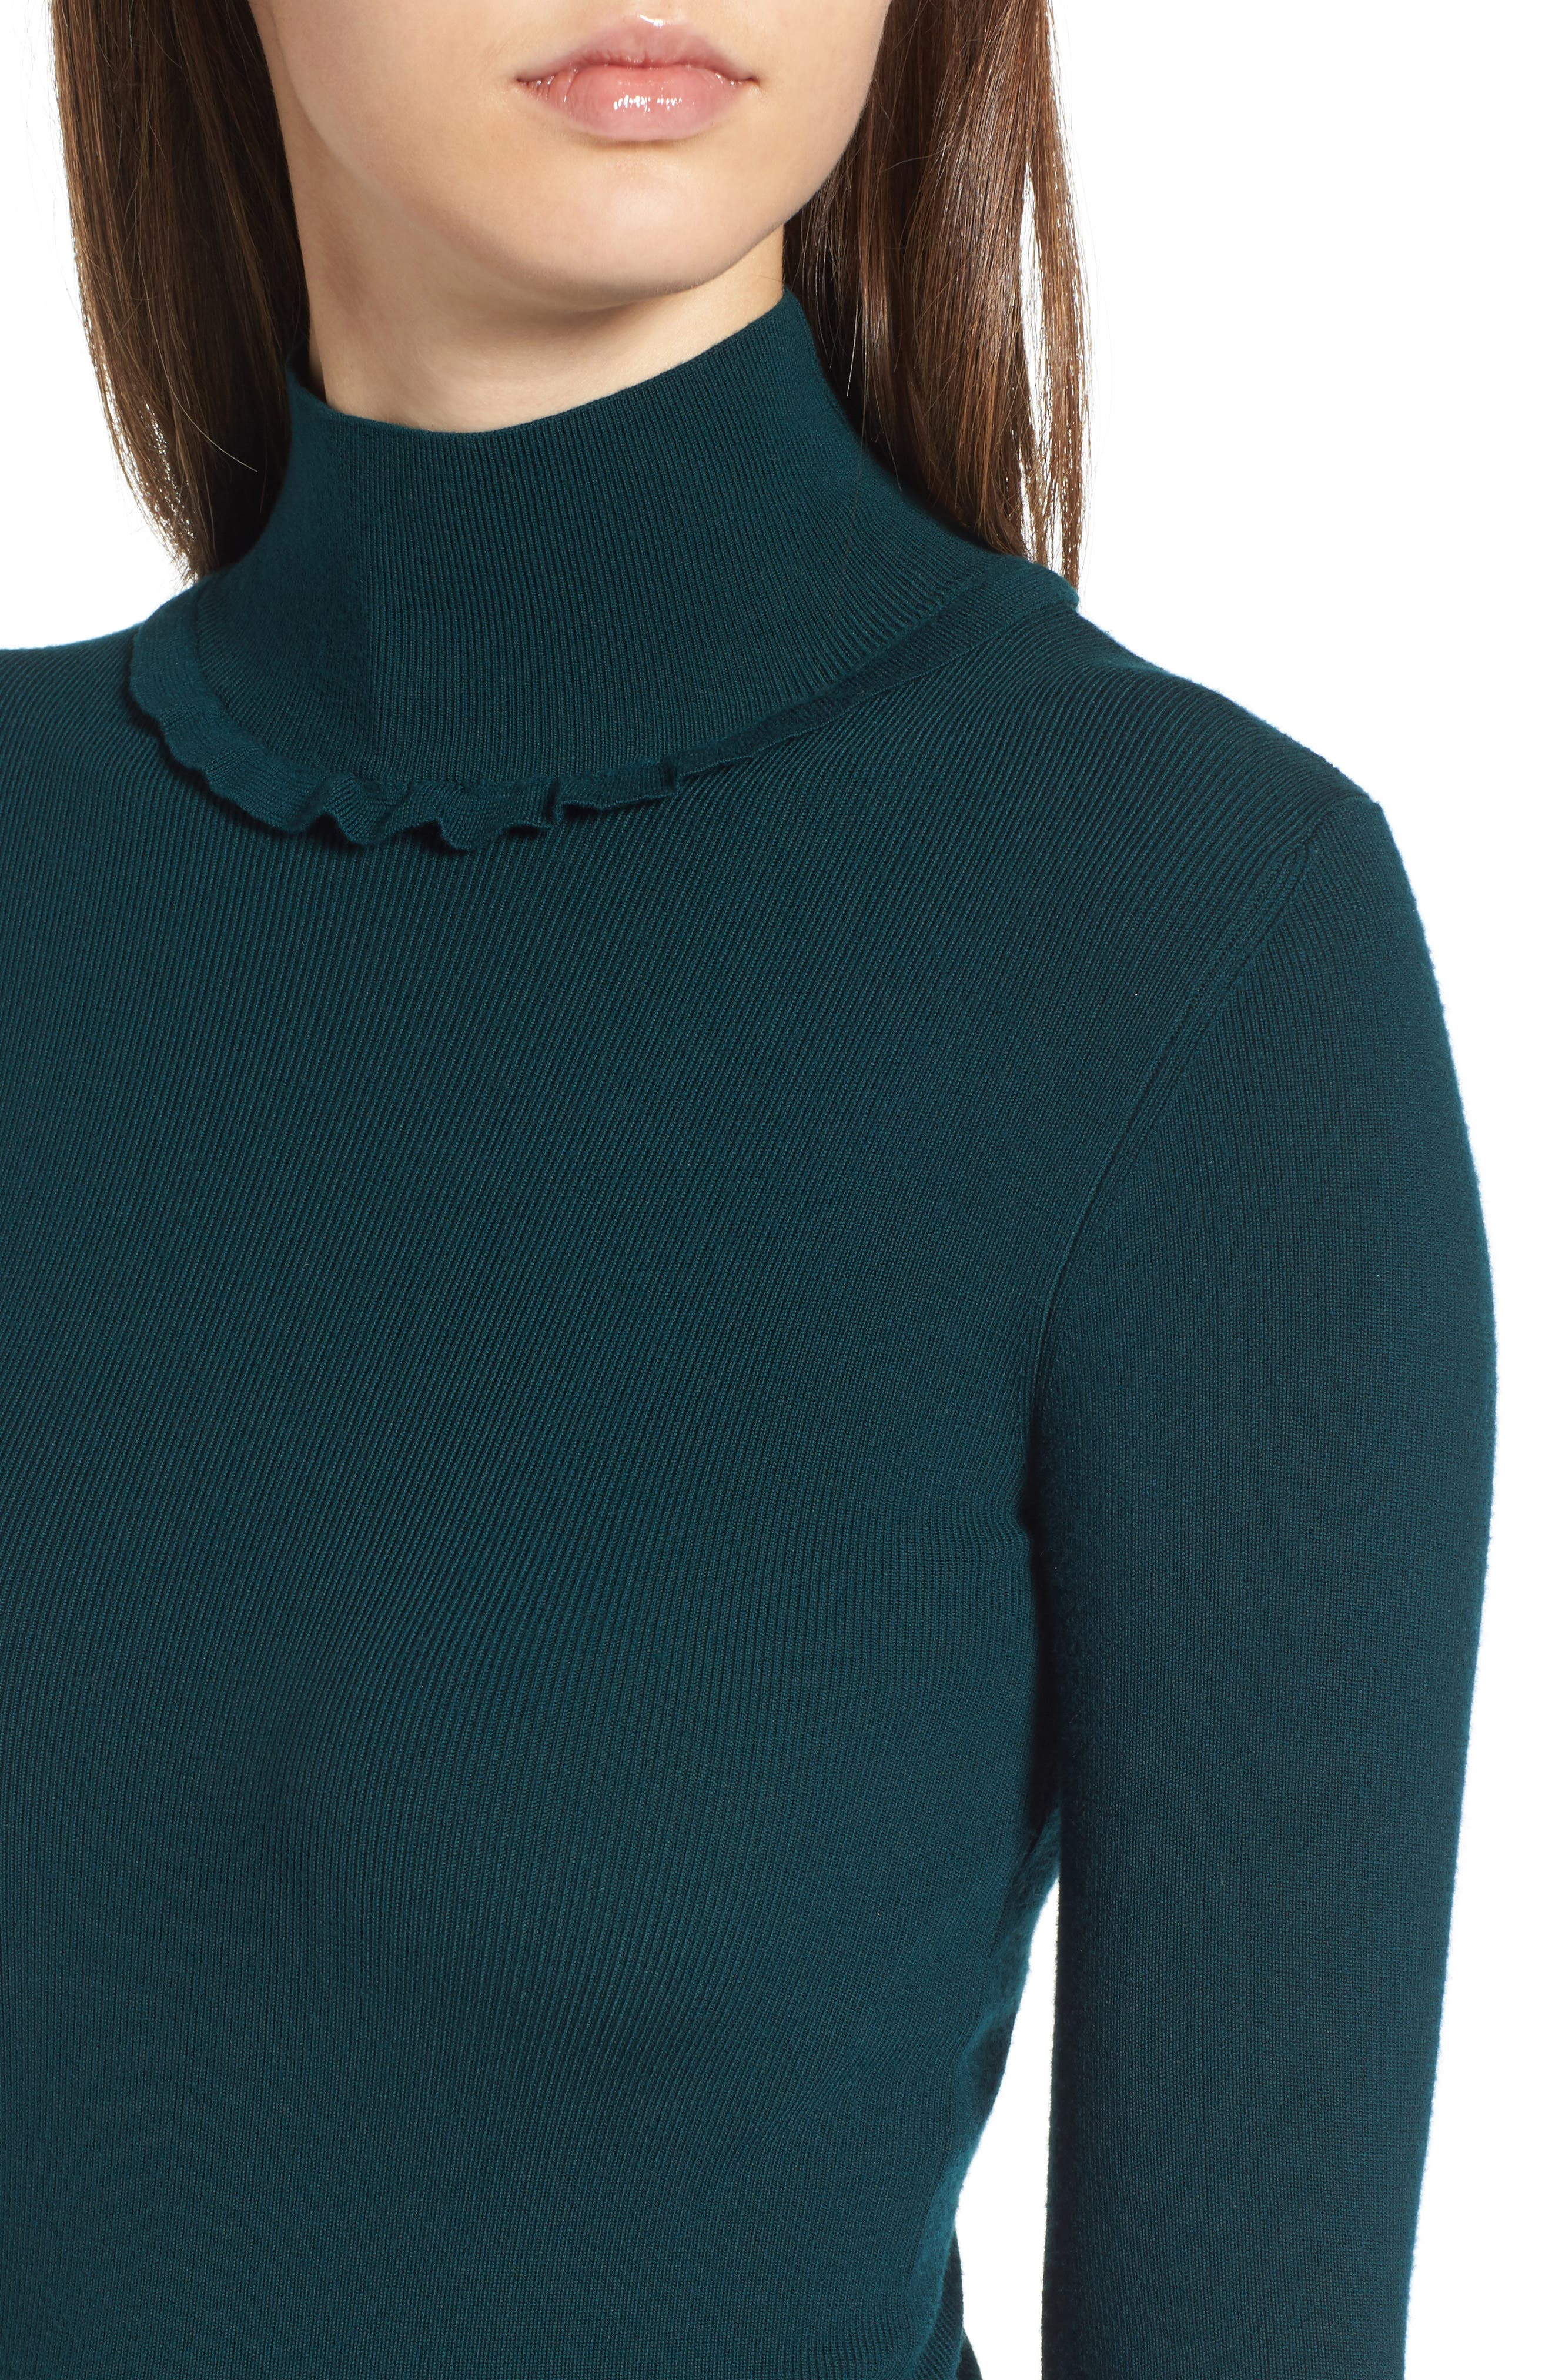 Ruffle Detail Pullover,                             Alternate thumbnail 5, color,                             Green Ponderosa